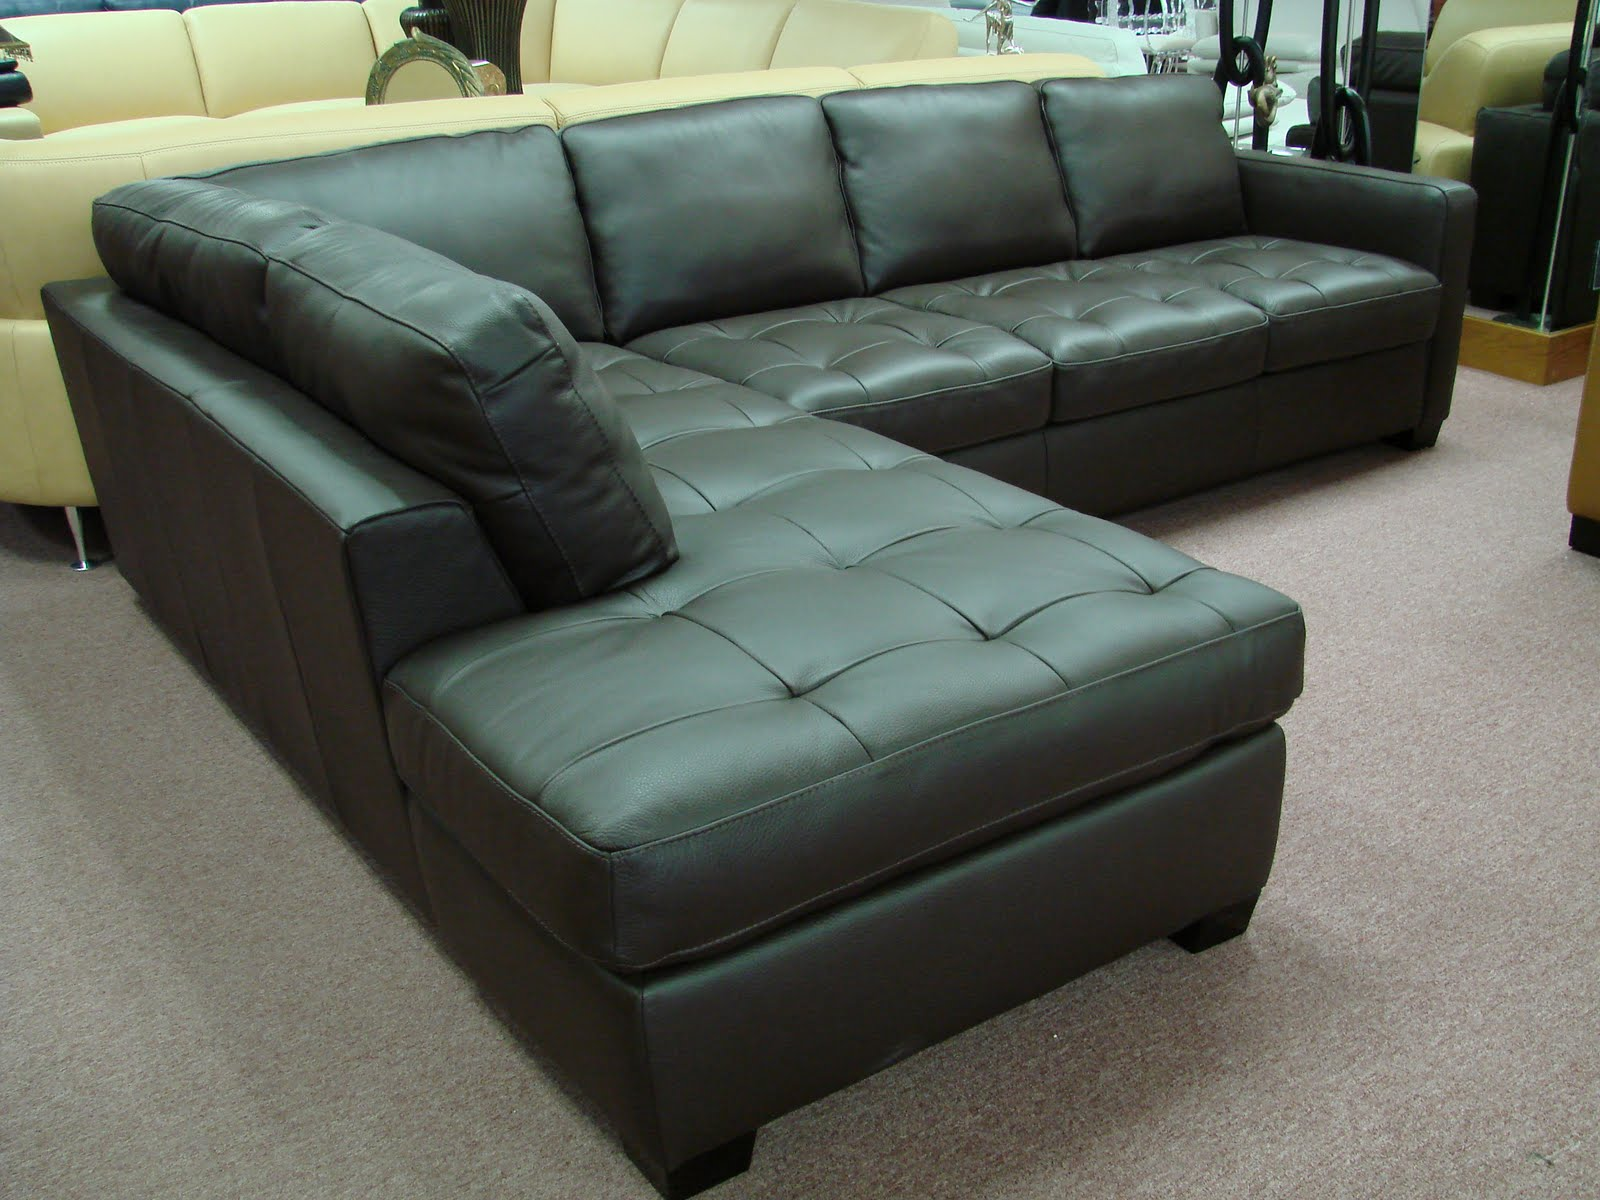 Natuzzi Leather Sofas Sectionals By Interior Concepts Furniture Italsofa By Natuzzi I276